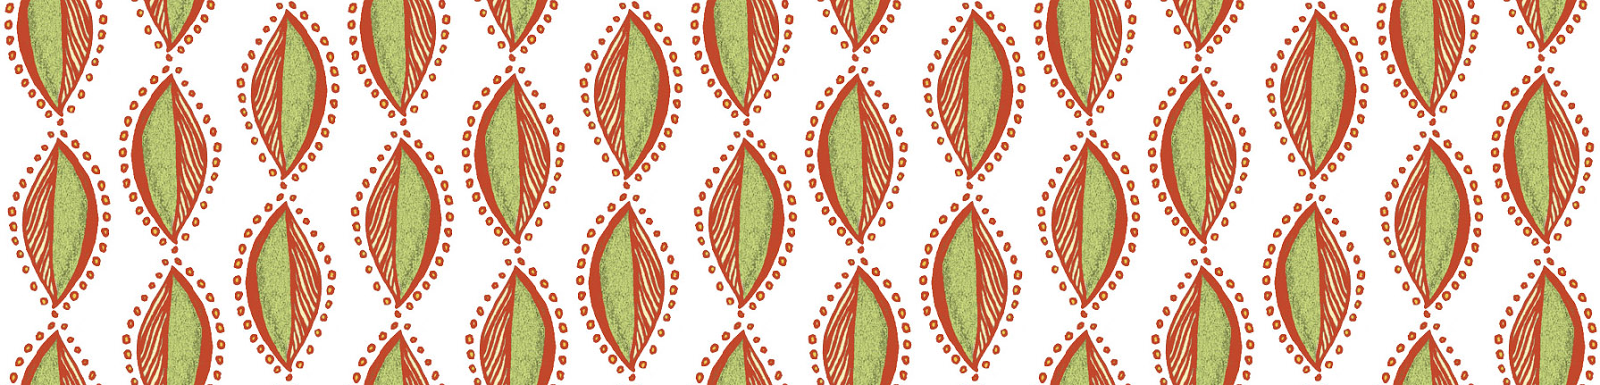 An abstract leaf -ish pattern green and orange.RobinAnnWren.2013